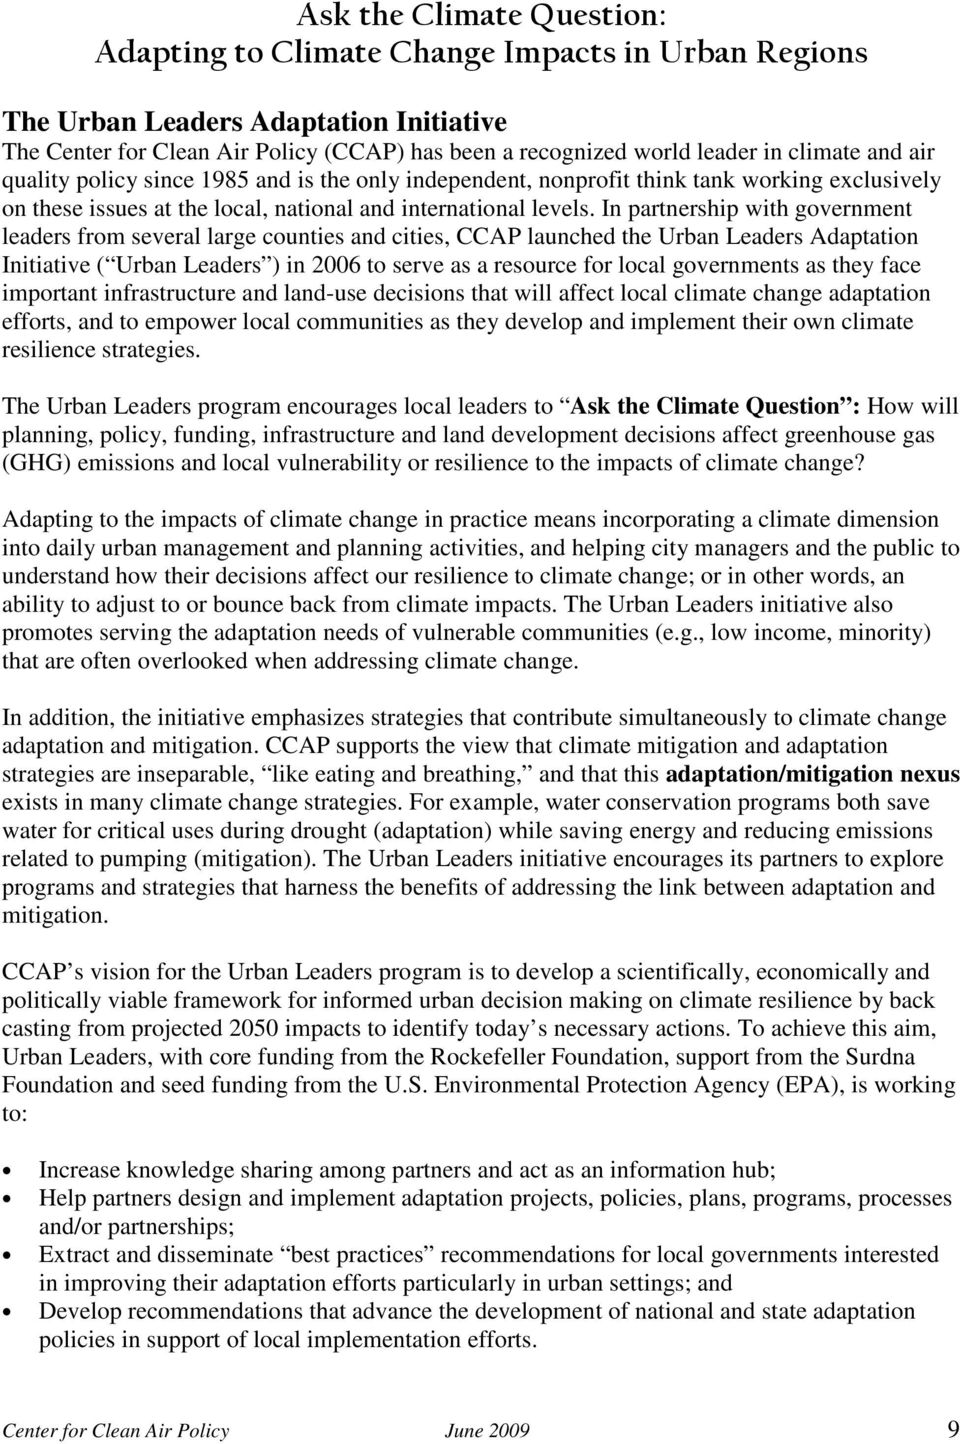 In partnership with government leaders from several large counties and cities, CCAP launched the Urban Leaders Adaptation Initiative ( Urban Leaders ) in 2006 to serve as a resource for local